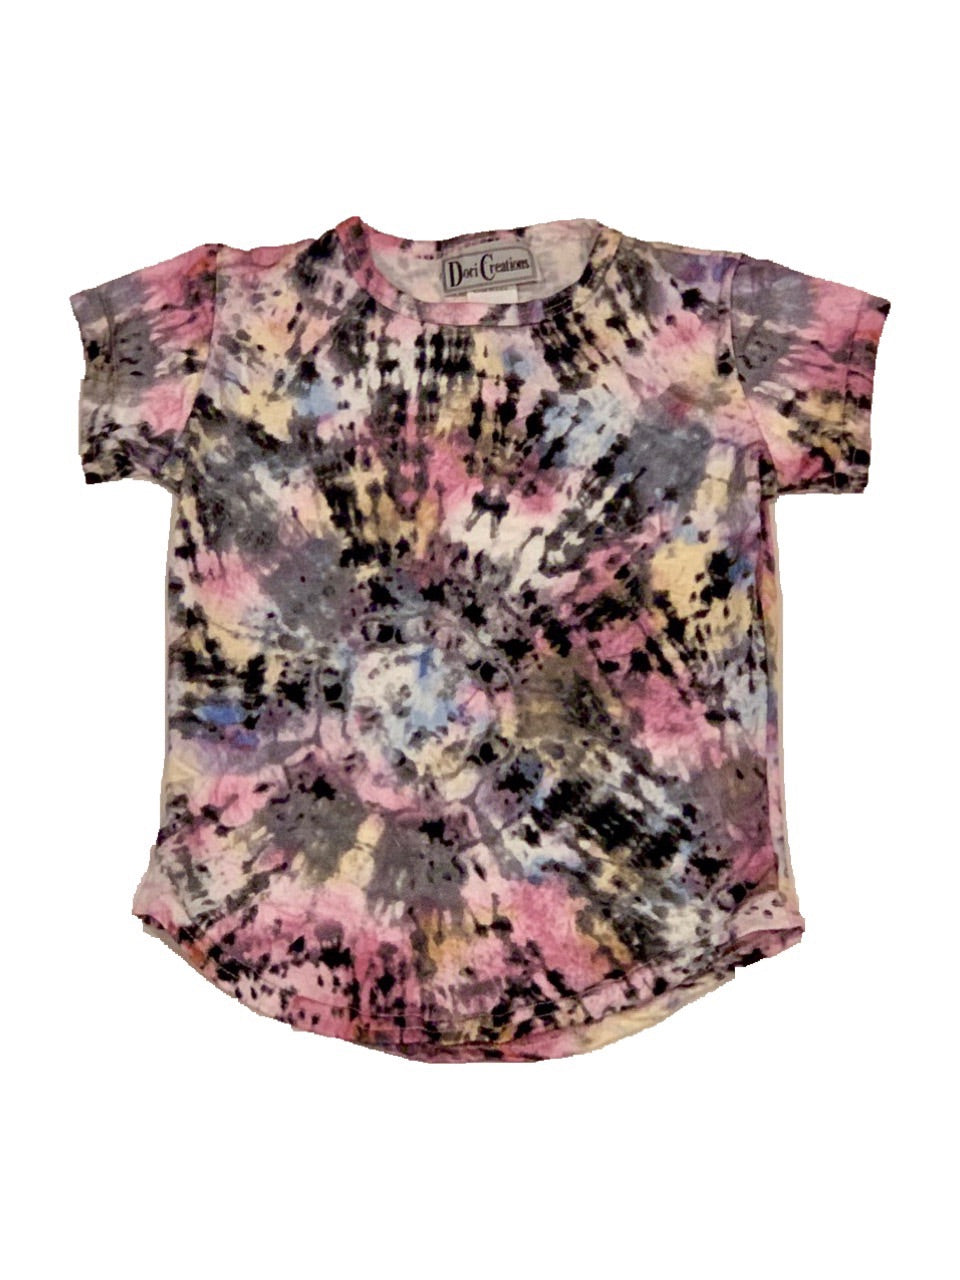 Dori Pink/Black Tie Dye Short Sleeve Top